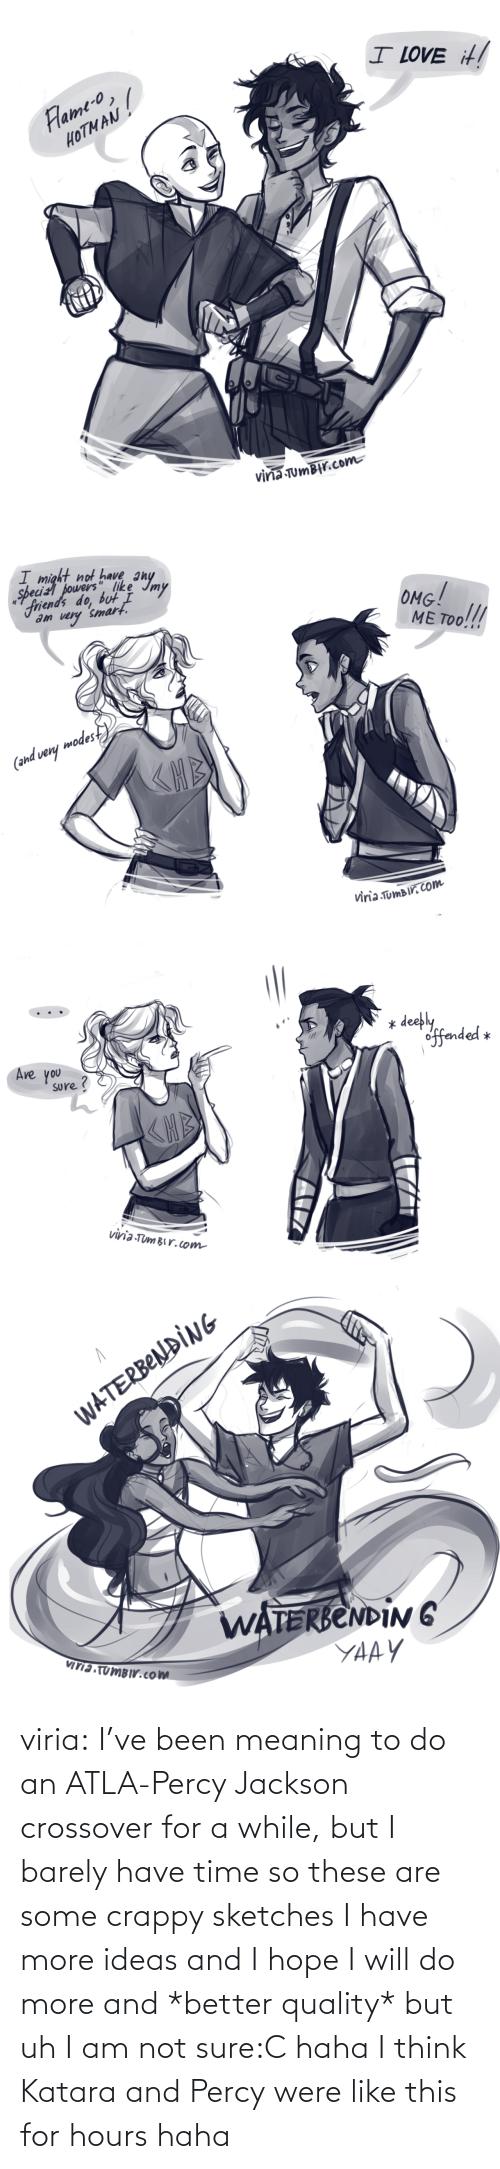 hours: viria:  I've been meaning to do an ATLA-Percy Jackson crossover for a while, but I barely have time so these are some crappy sketches I have more ideas and I hope I will do more and *better quality* but uh I am not sure:C haha I think Katara and Percy were like this for hours haha